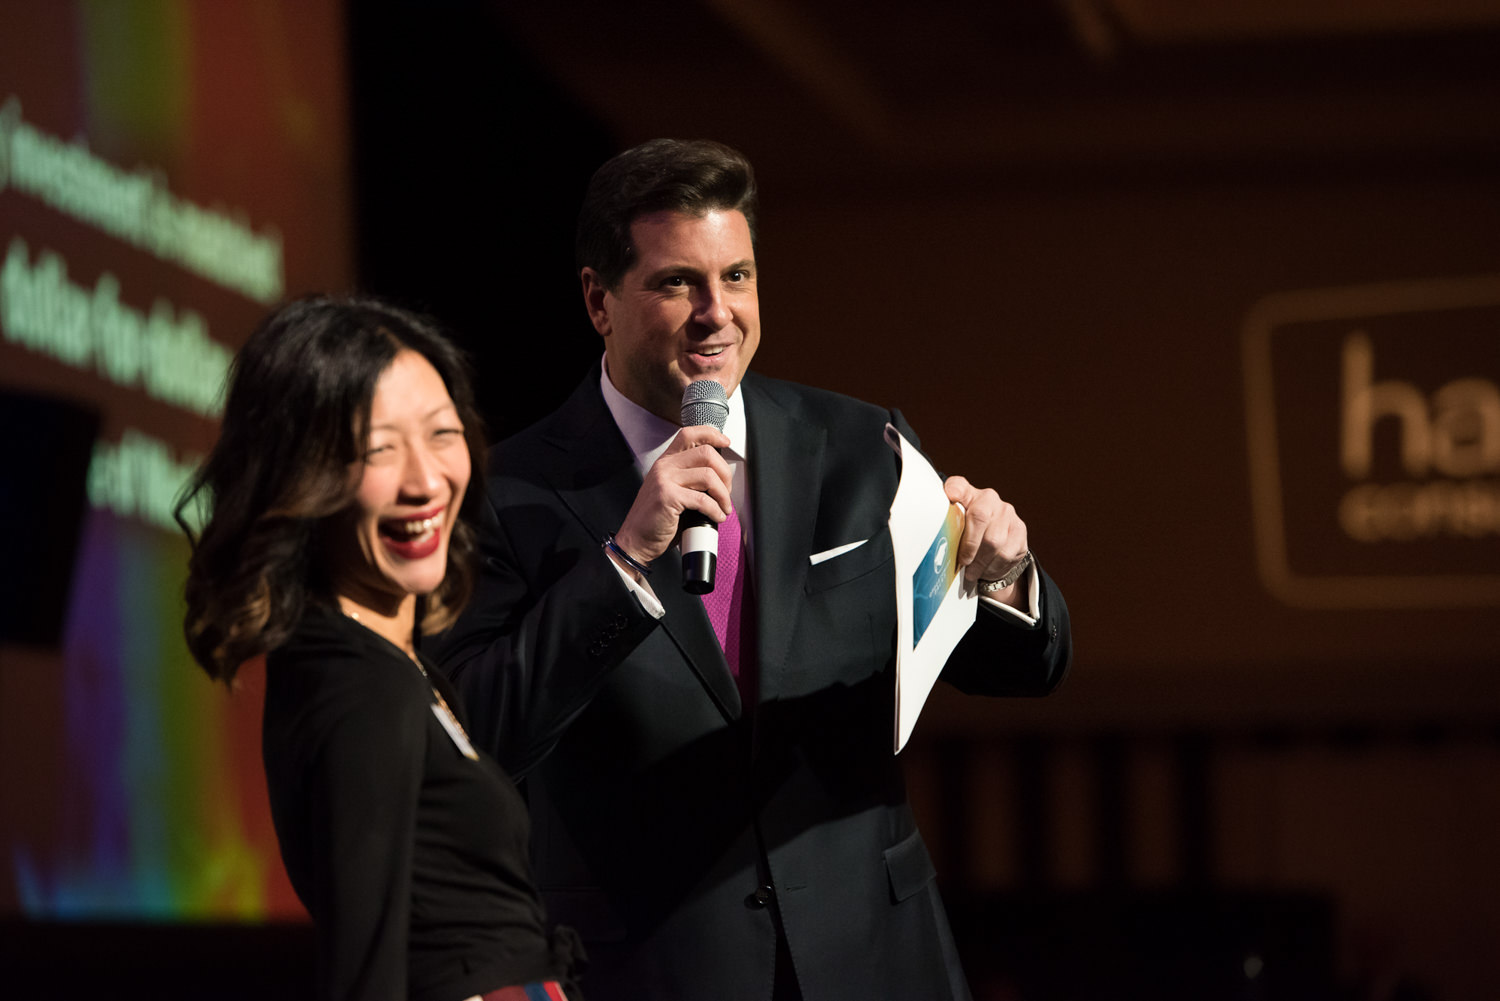 corporate luncheon emcees on stage